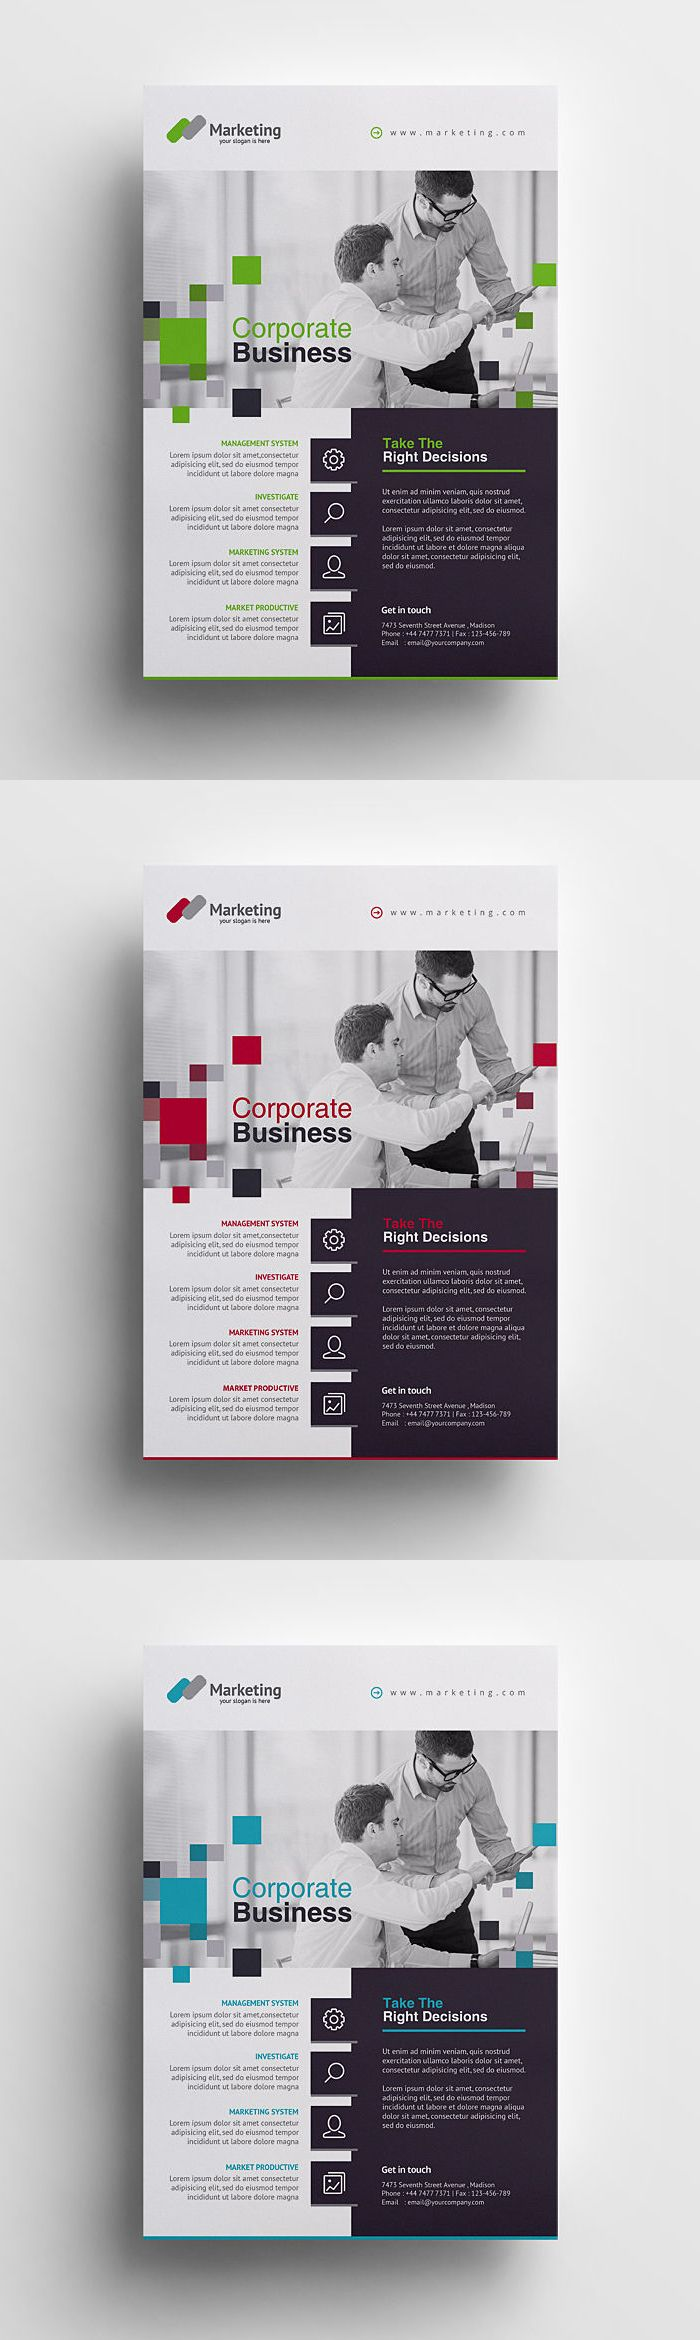 1000 ideas about business flyers business flyer 6e07fcd1c7a9388cb251d89cca771361 jpg